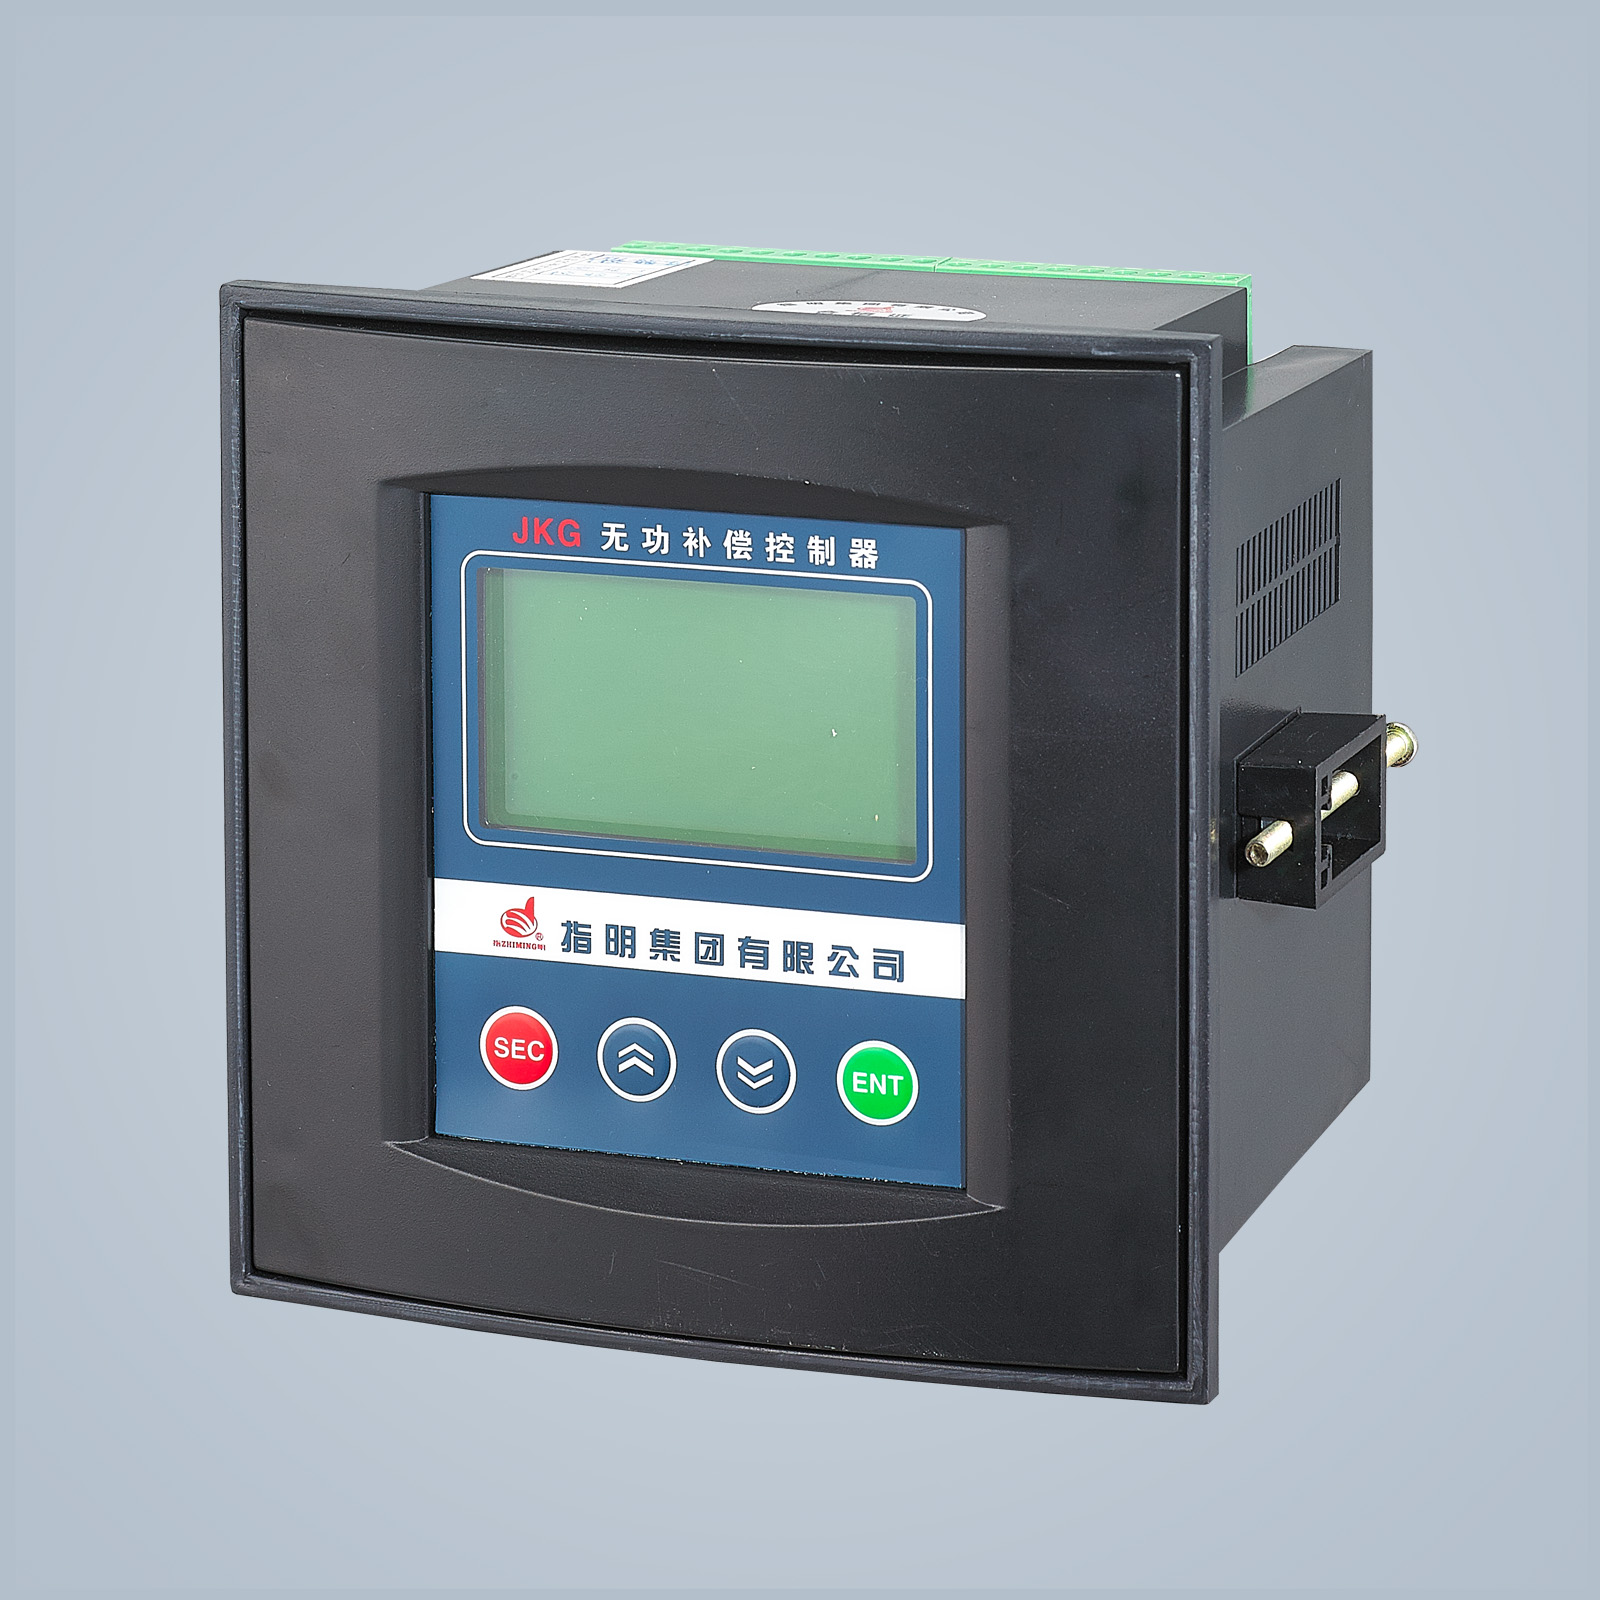 JKG-24  Series Reactive power auto-compen sation controller